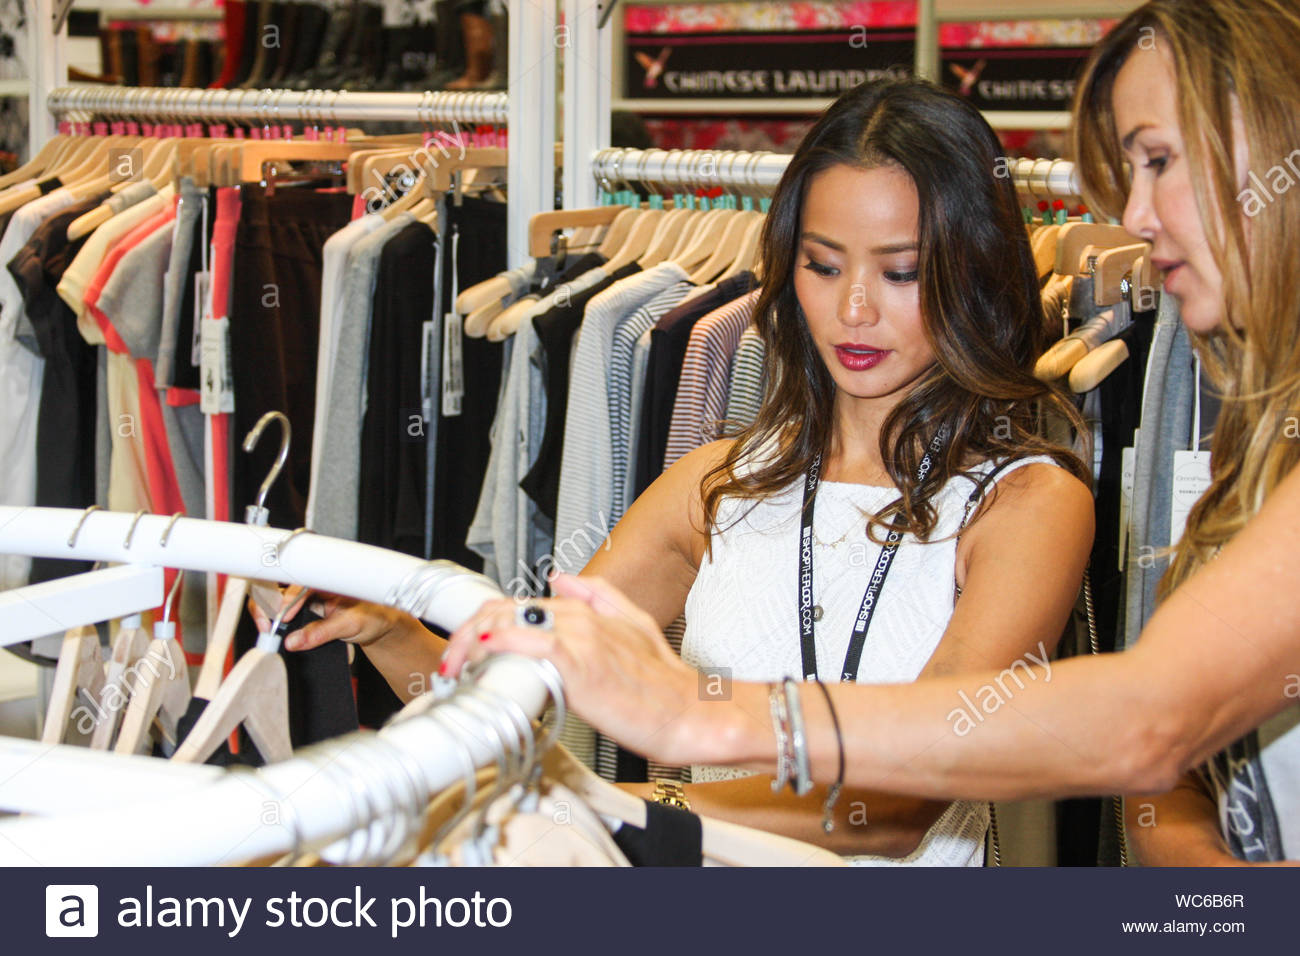 Las Vegas Nv Actress Jamie Chung And Actor Bryan Greenberg Attend The Magic Fashion Tradeshow In Support Of The Omnipeace Fashion Saves Lives Campaign The Collection Will Inspire The Market To